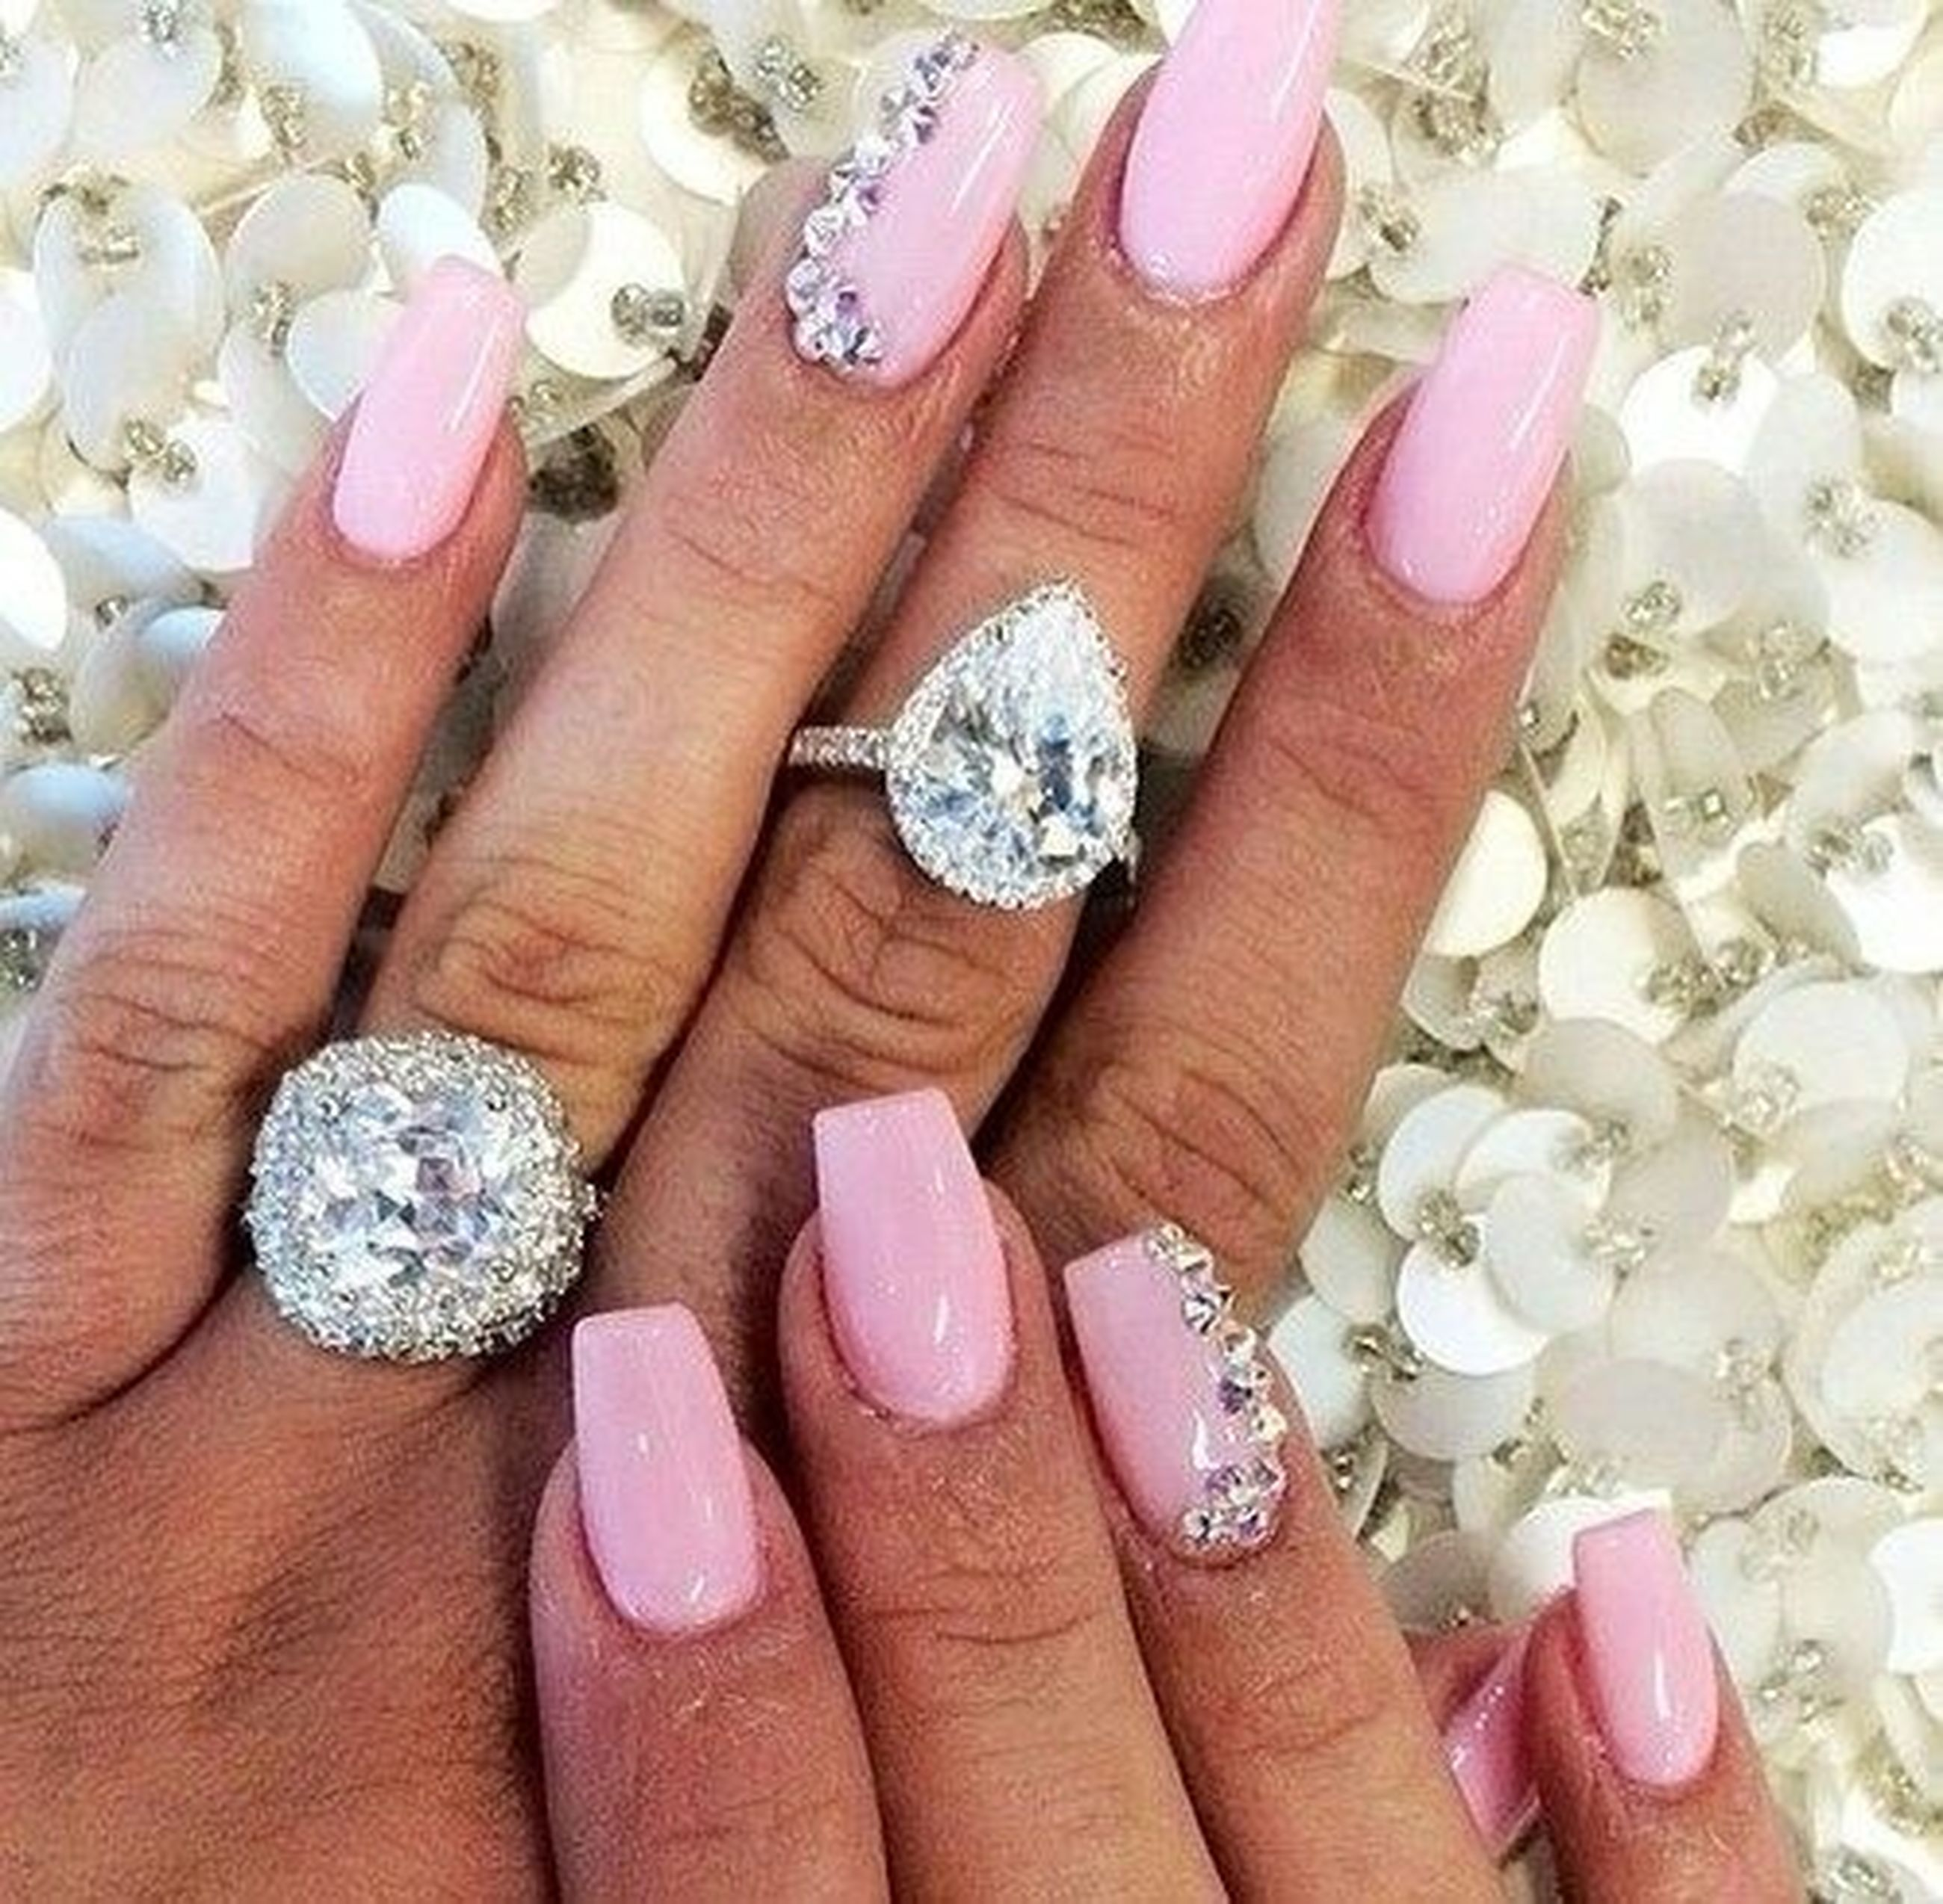 person, part of, holding, human finger, cropped, close-up, indoors, high angle view, jewelry, freshness, ring, personal perspective, unrecognizable person, fragility, palm, nail polish